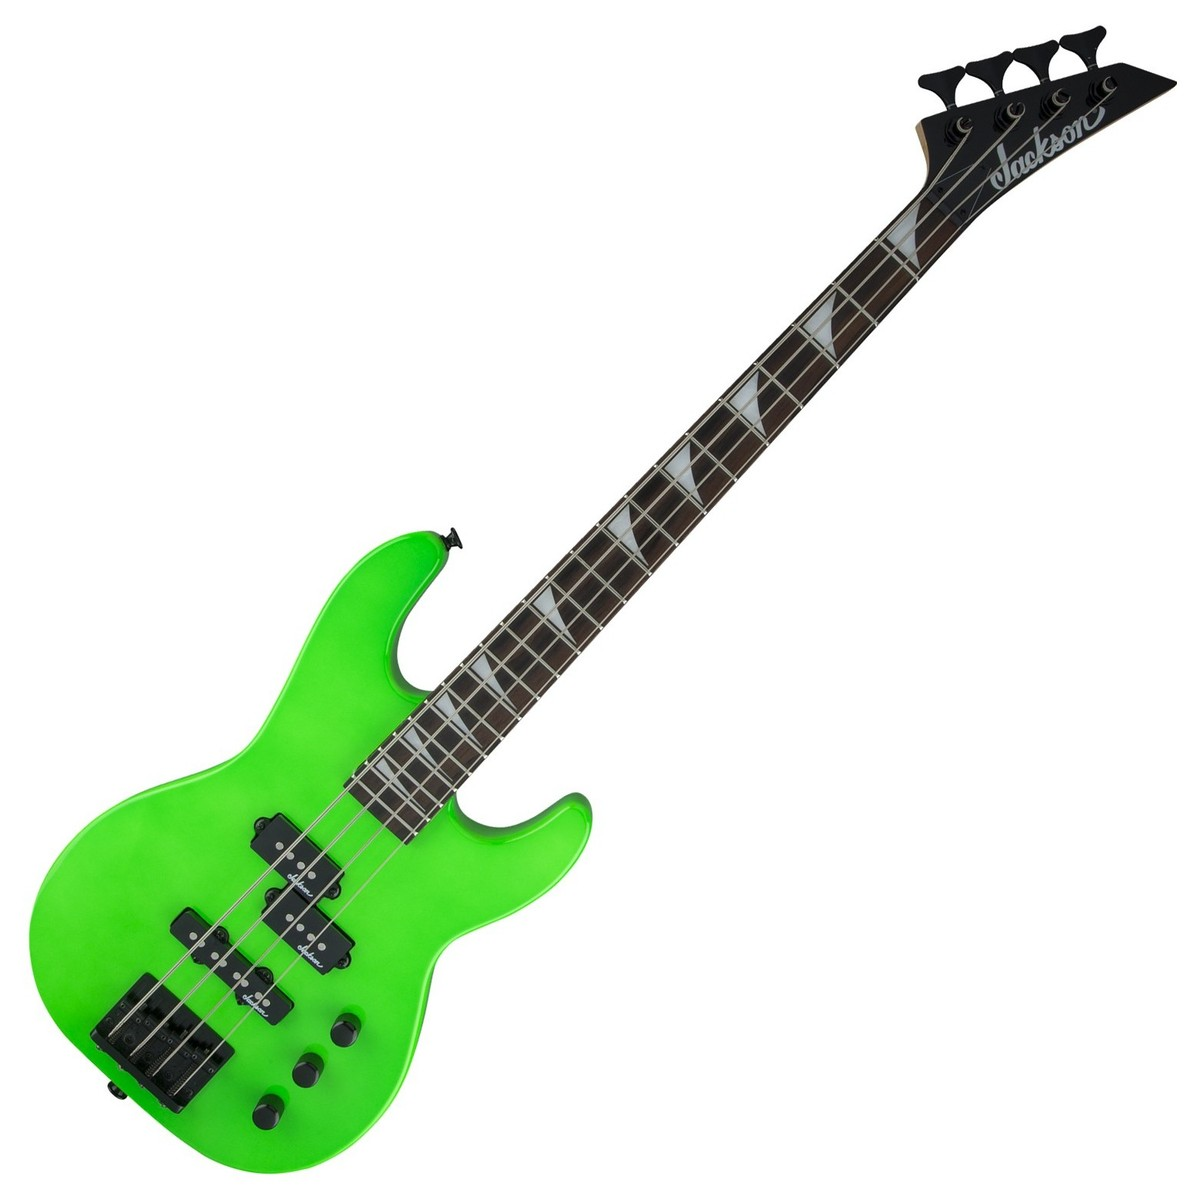 Minion Jackson Guitar Wiring Auto Diagram Today Dk2fs House Symbols Js1x Concert Bass Neon Green At Rh Gear4music Com Pickup